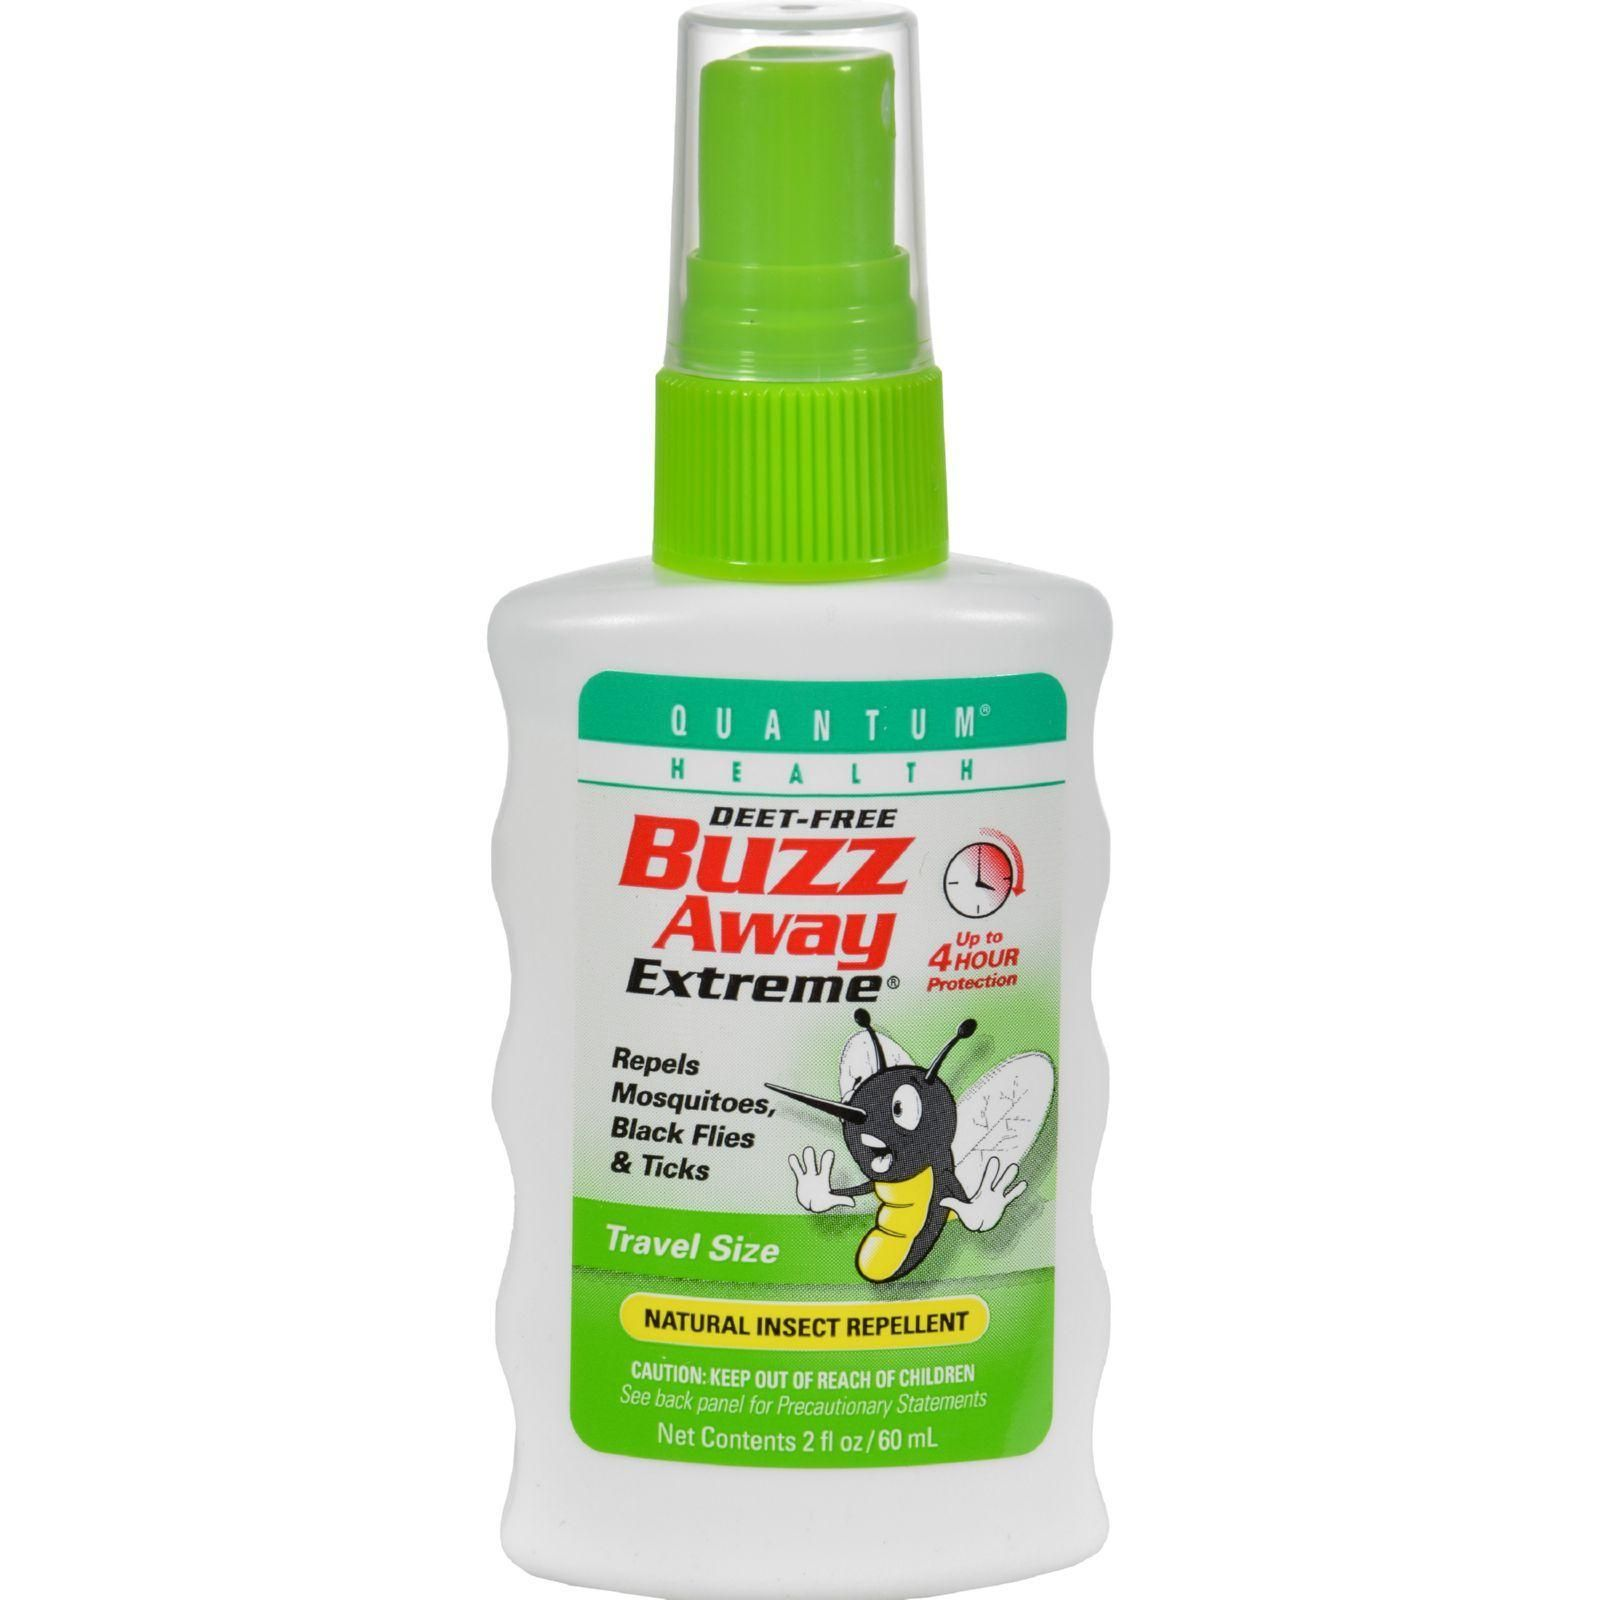 Quantum Buzz Away Extreme Insect Repellent 2 Fl Oz